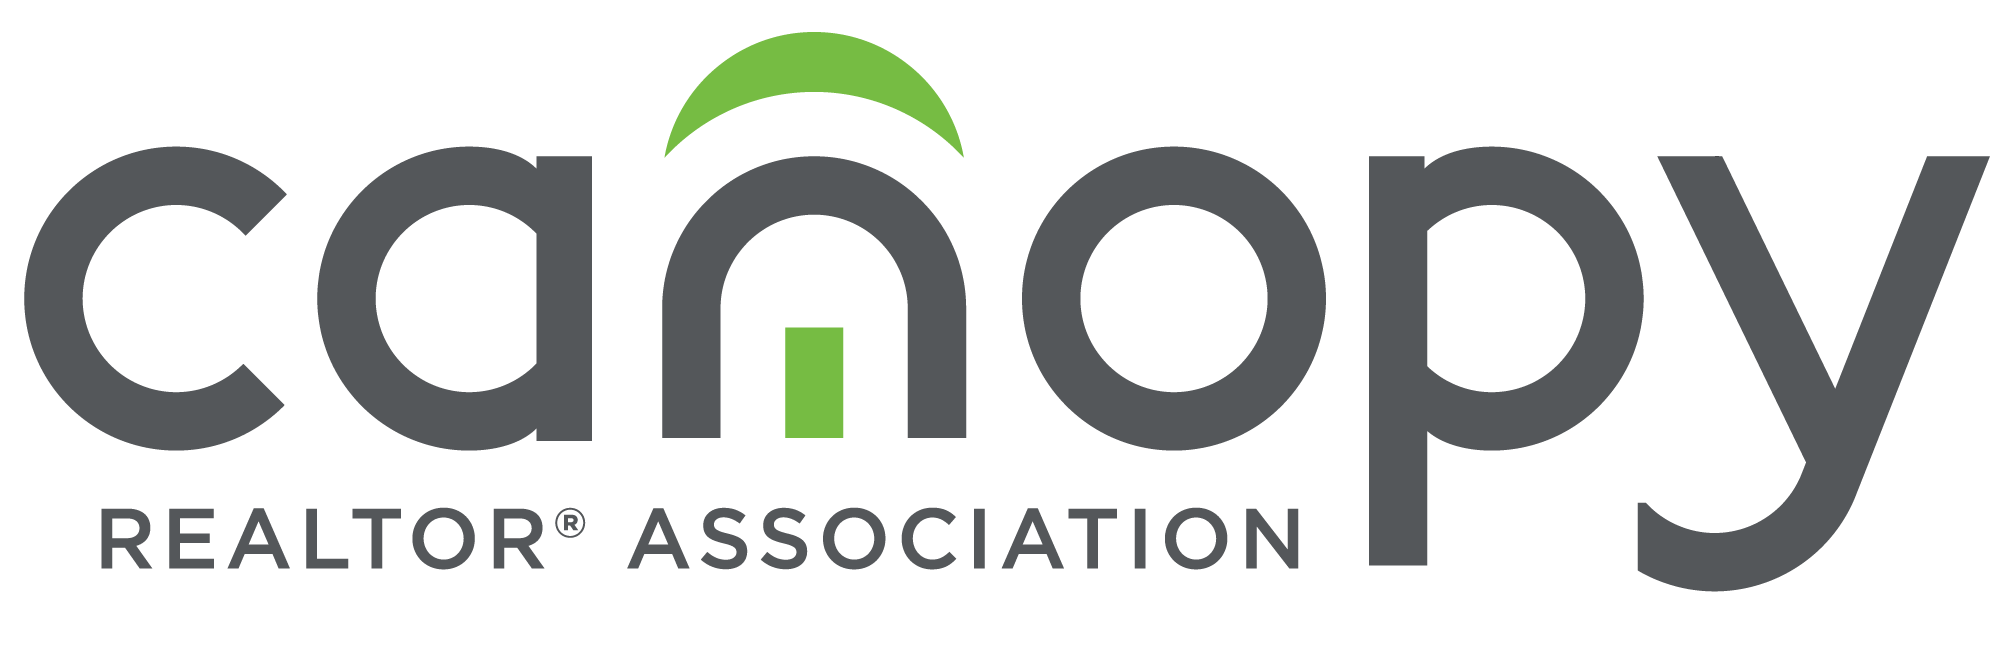 Canopy Realtor® Association